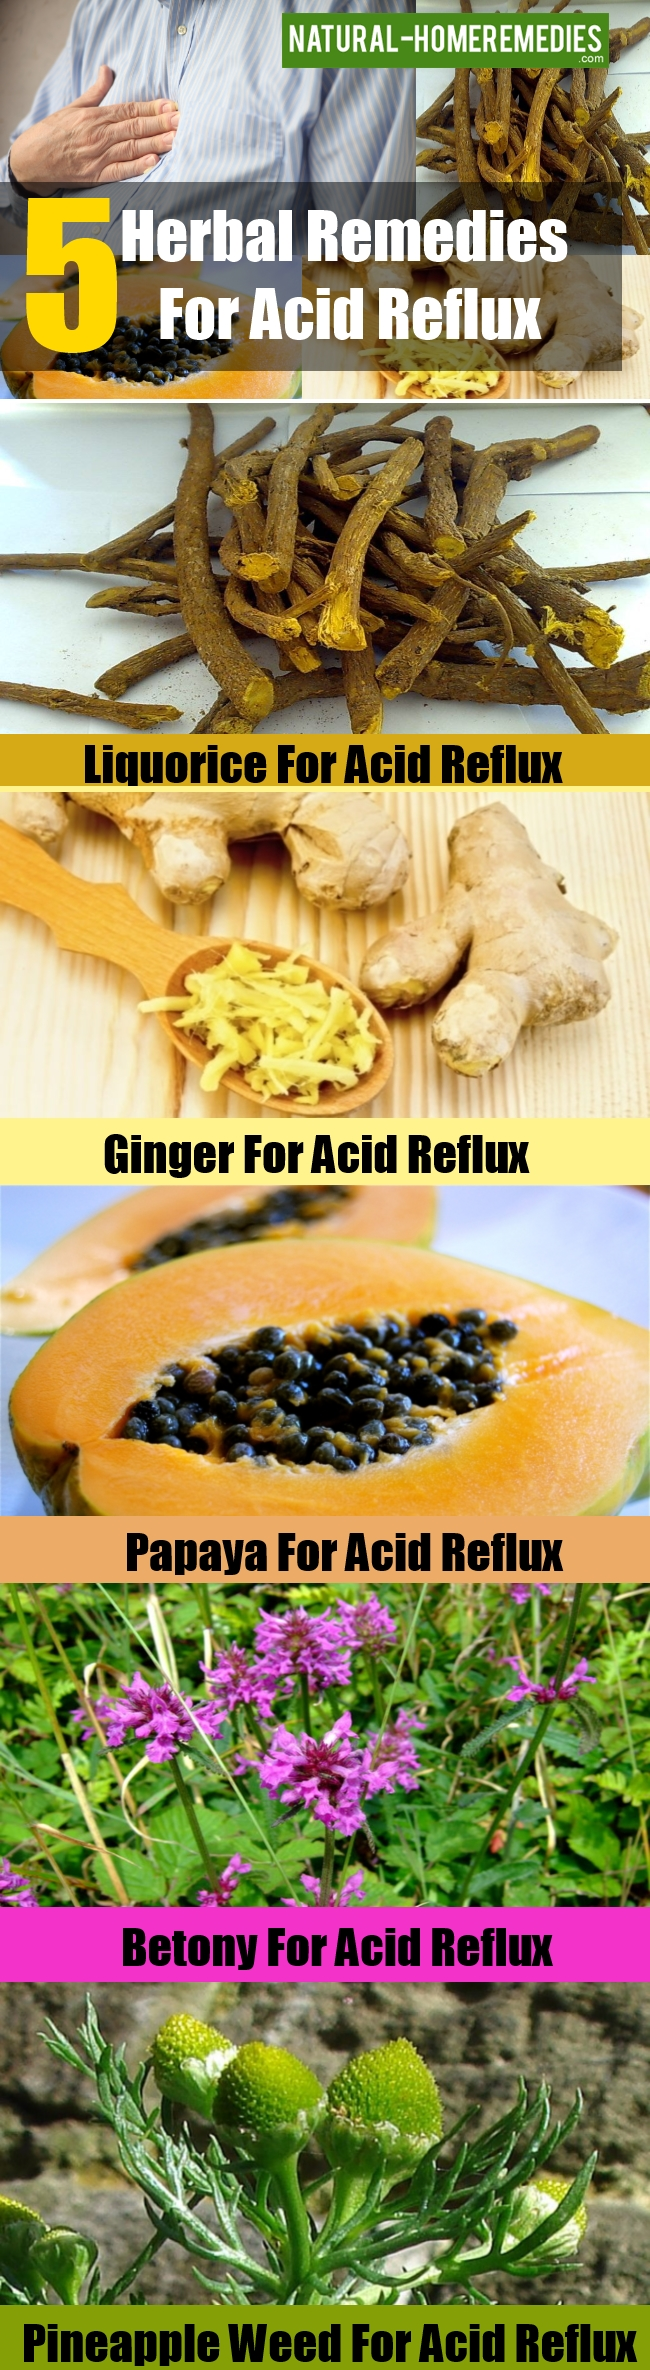 Herbal Remedies For Acid Reflux